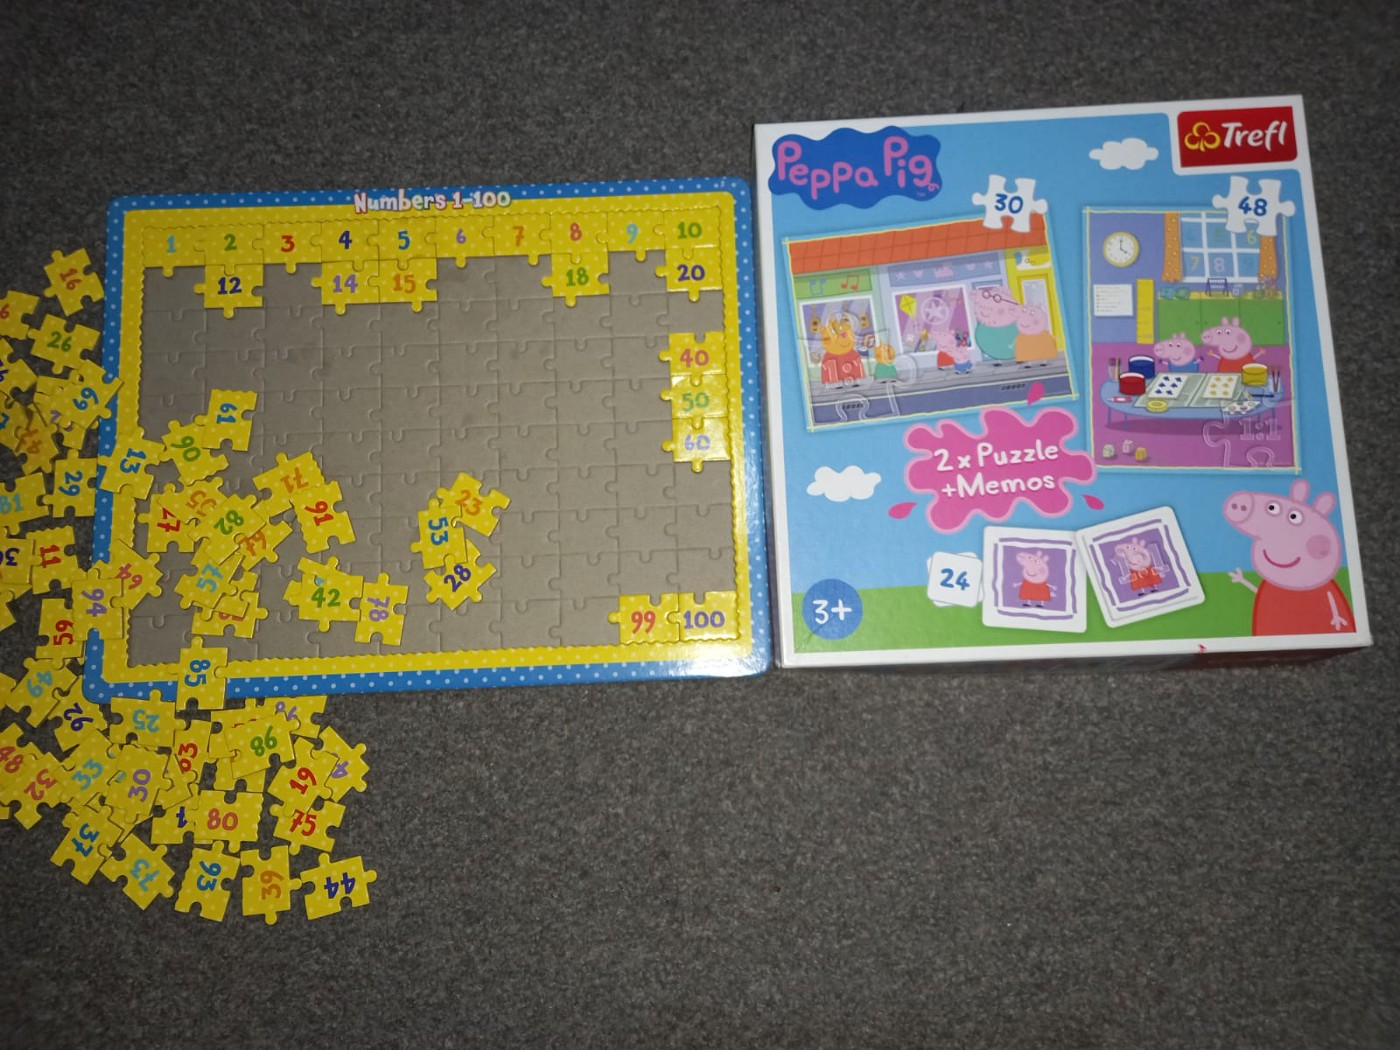 pictures of puzzles (1 to 100 Puzzle game) and peppa pig puzzle